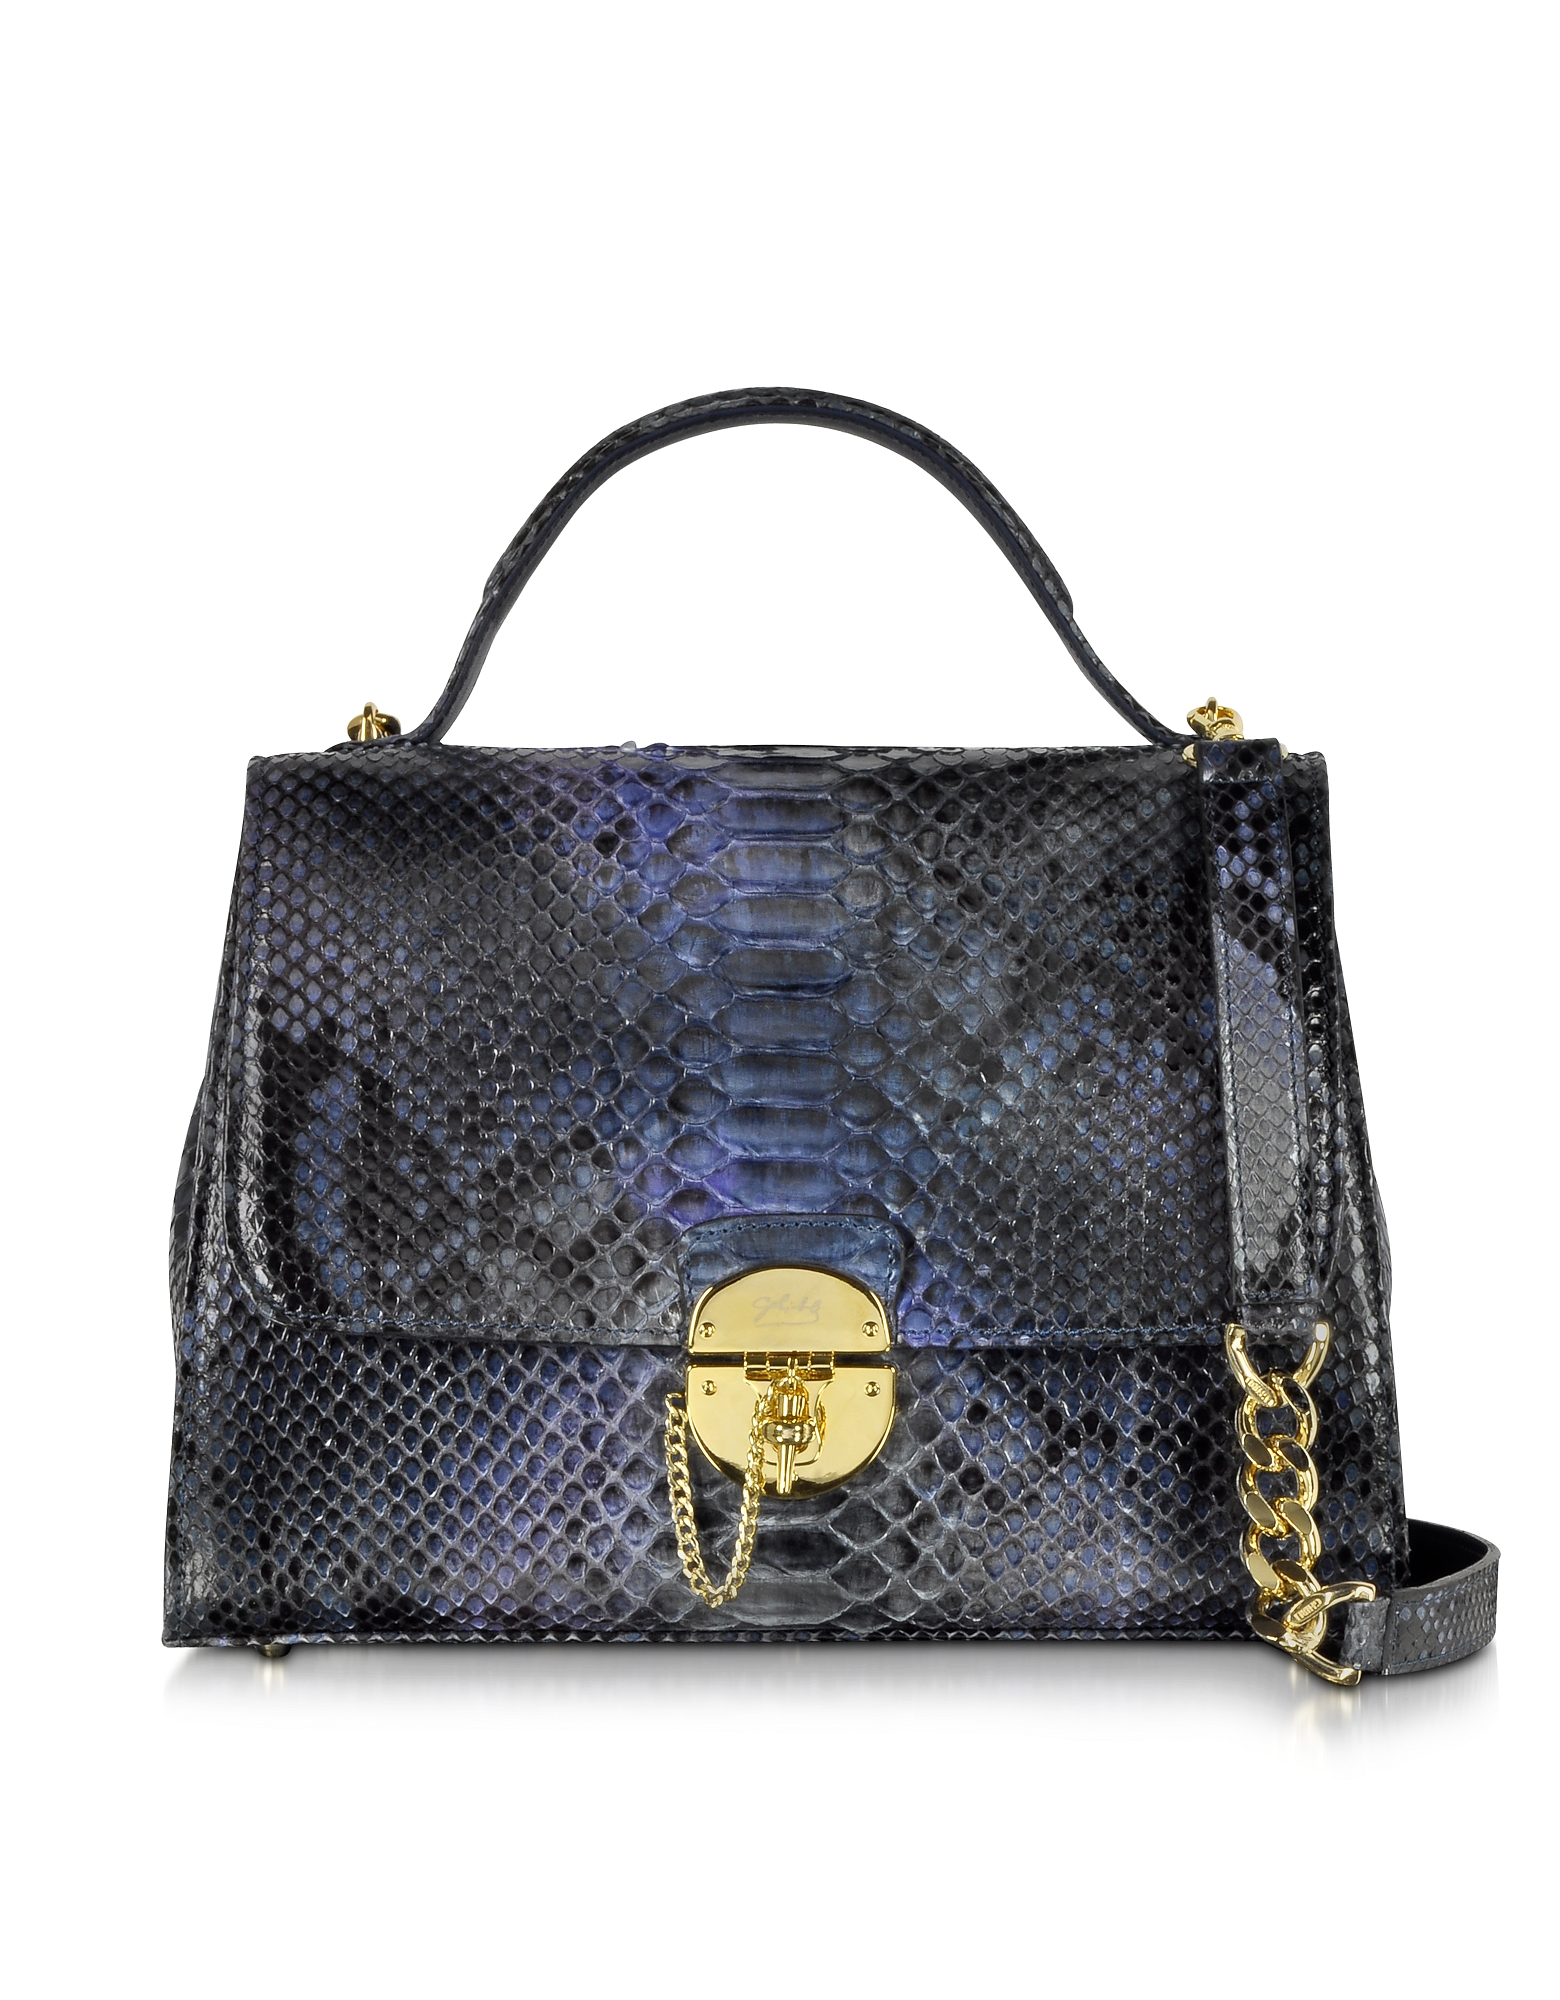 Ghibli Handbags, Dark Blue Python Satchel Bag w/Detachable Shoulder Strap